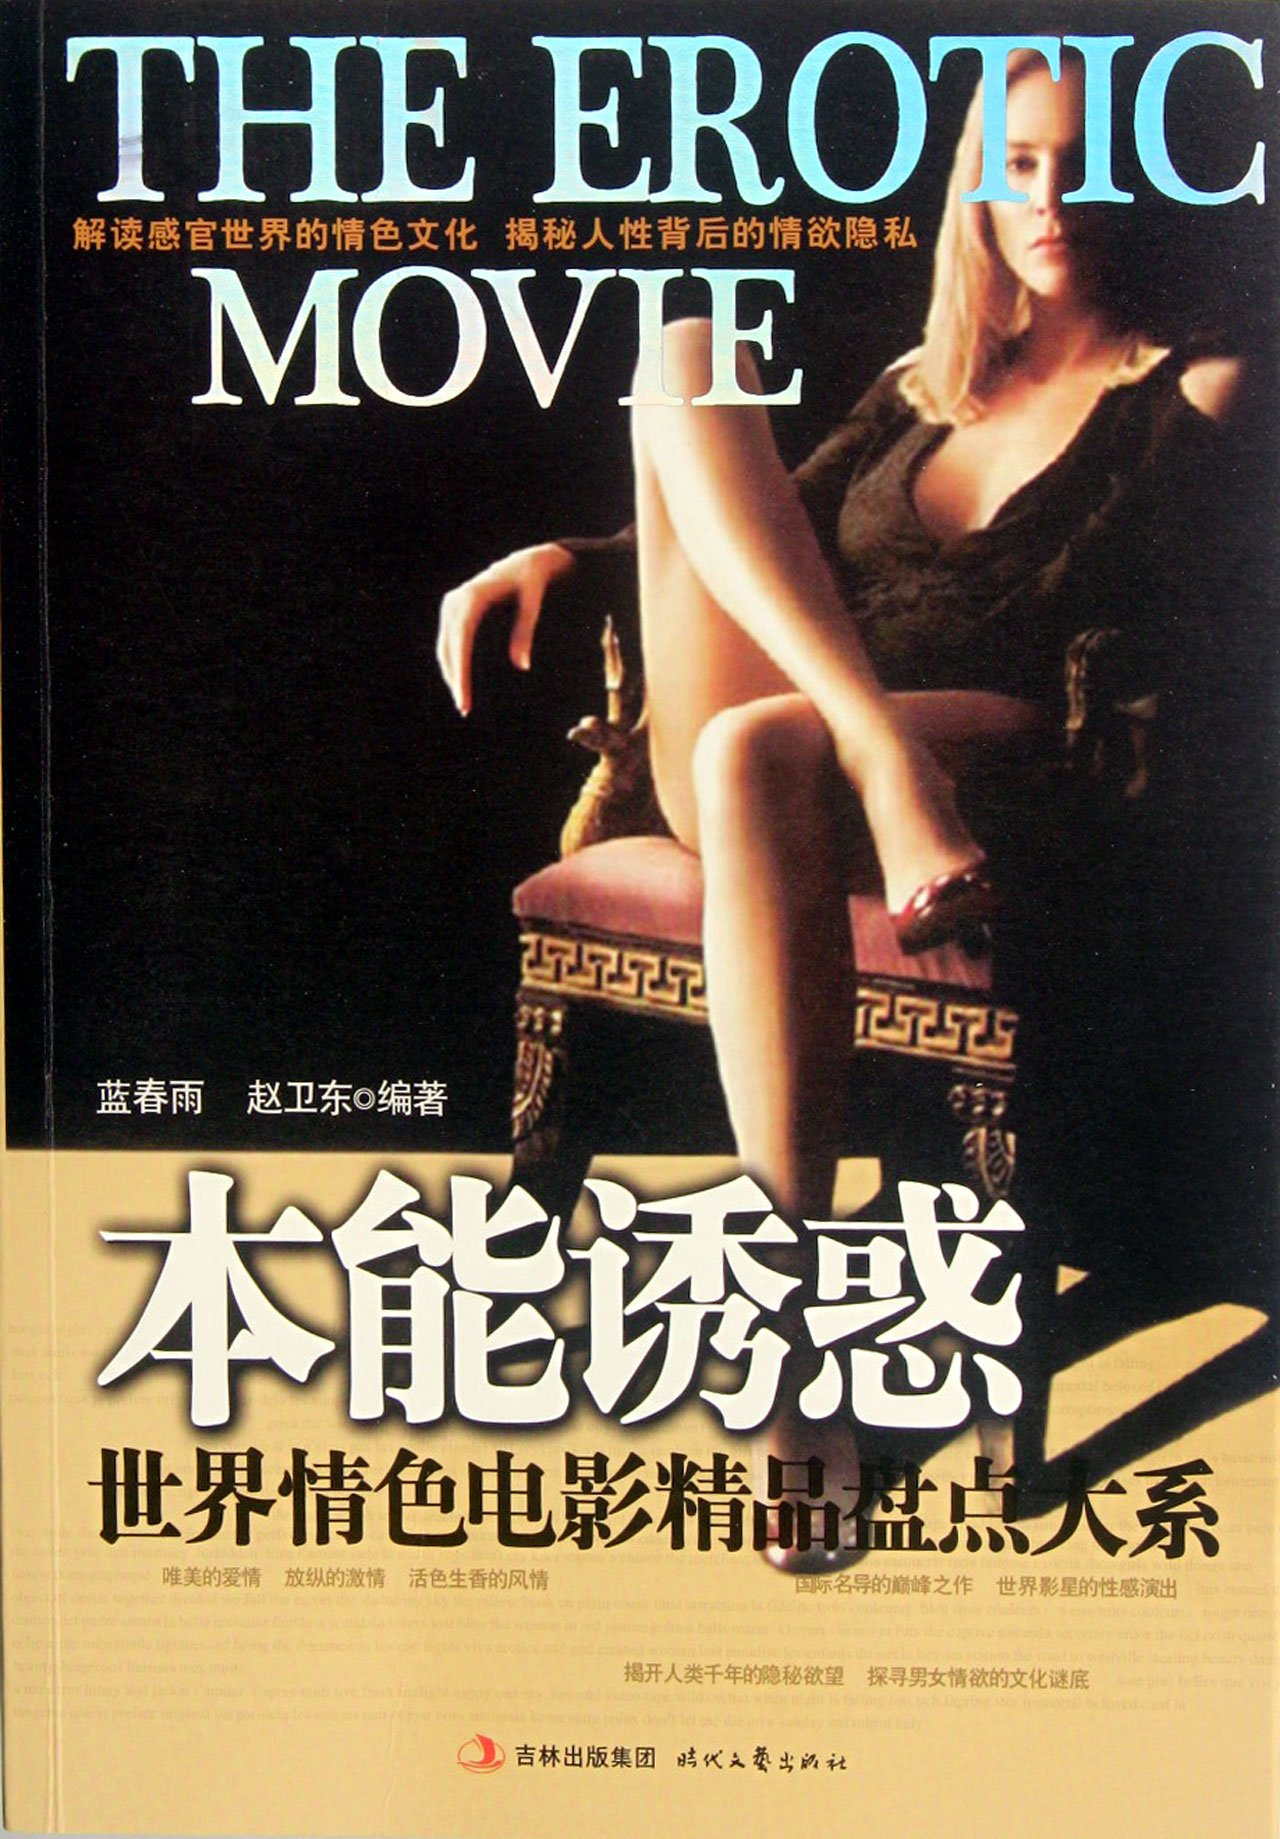 Classic erotic asian movie list with